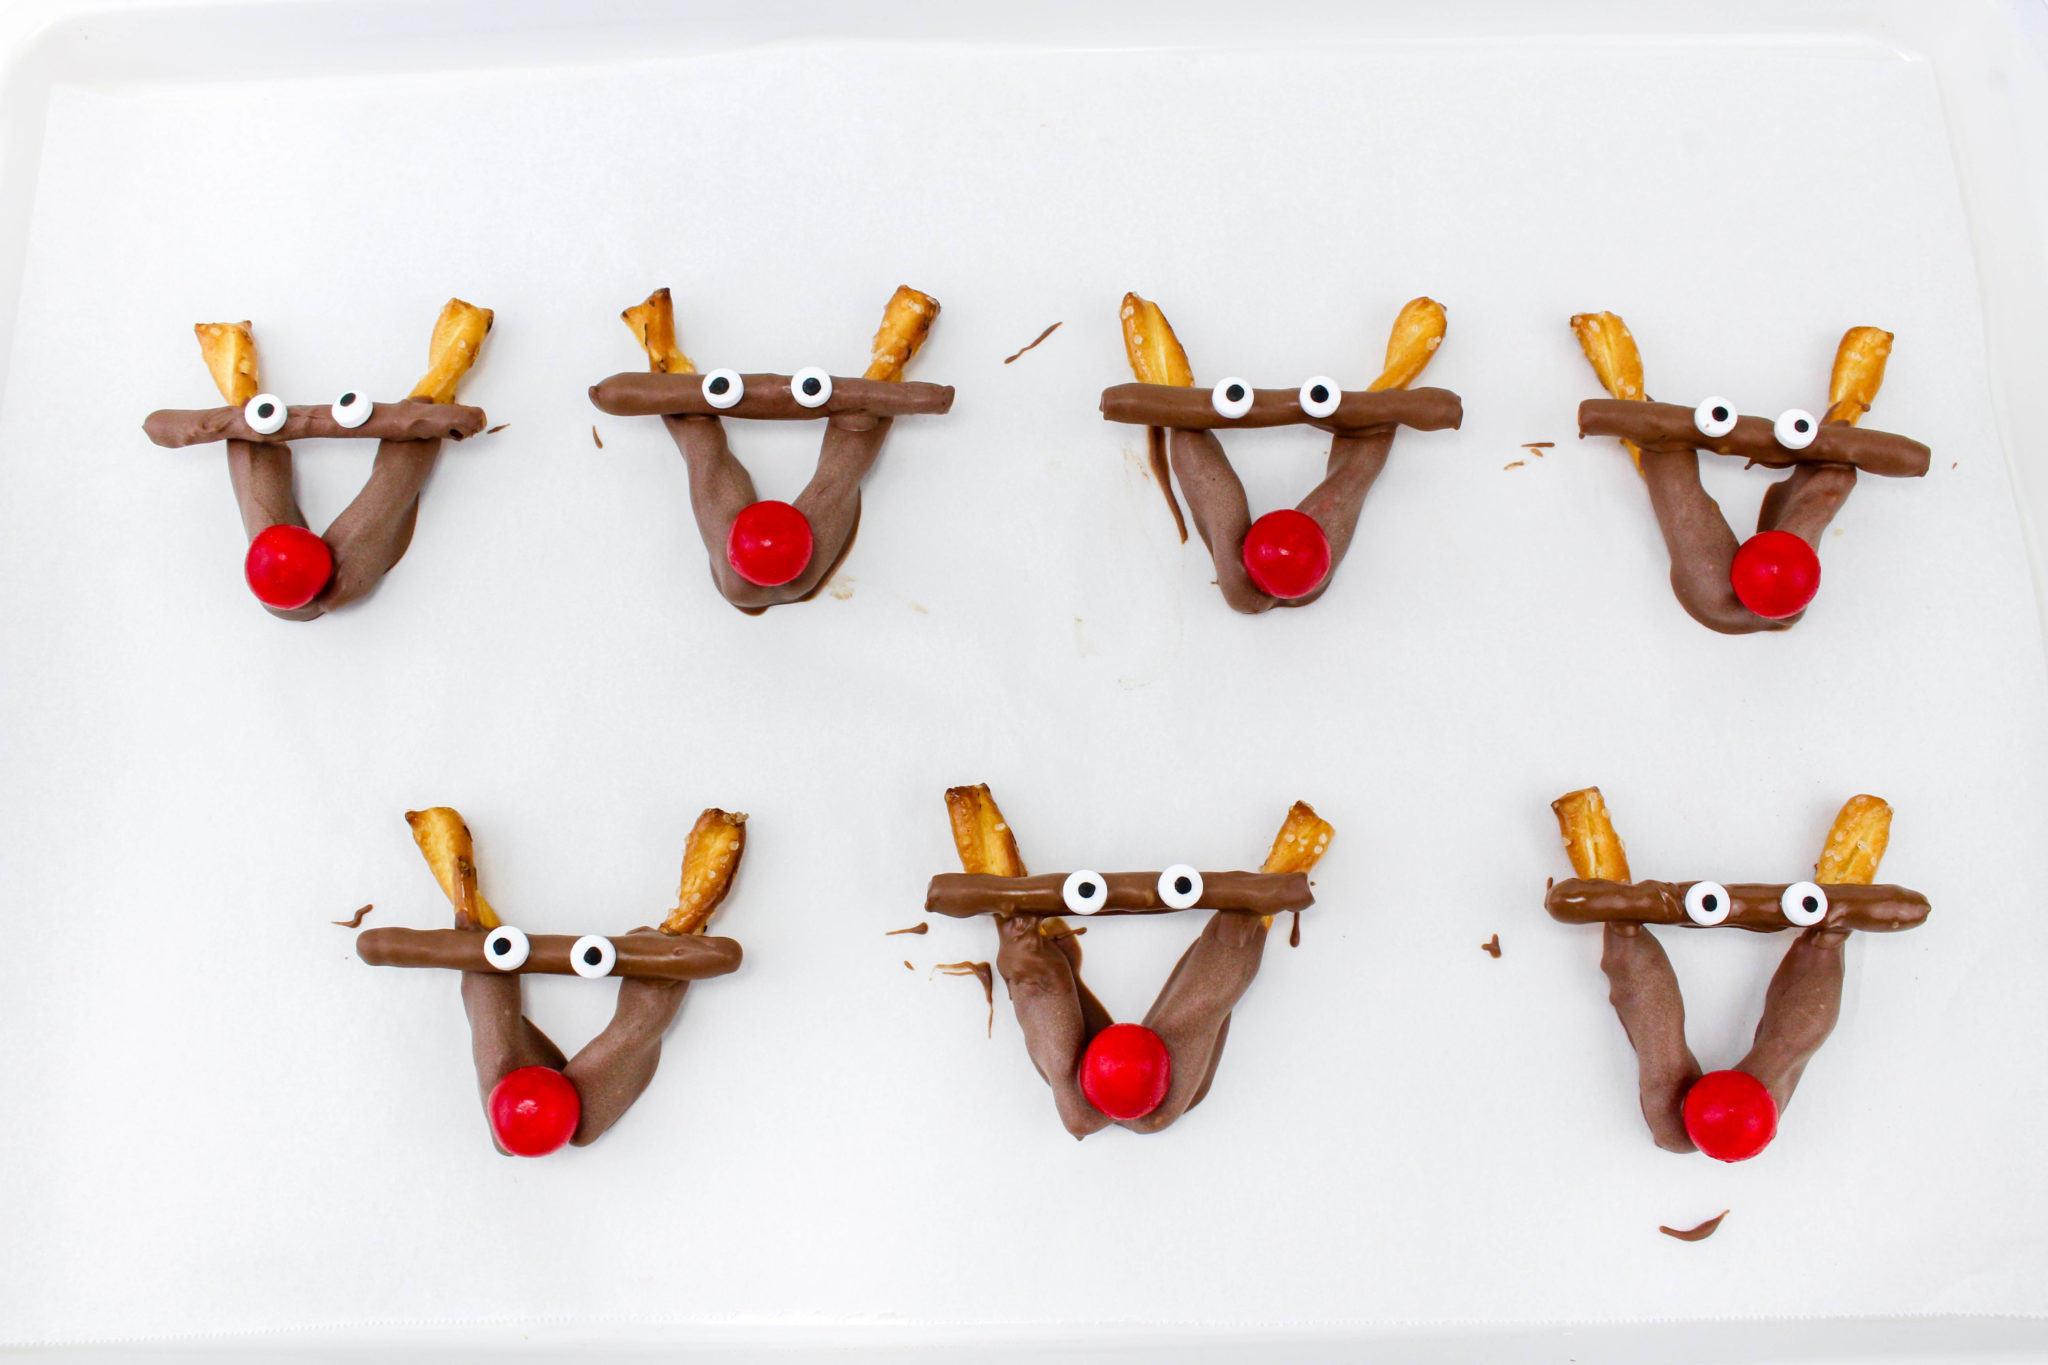 These Rudolph Pretzel Treats are honestly really easy to make, not to mention totally adorable. Impress your kids with this fun holiday snack today!